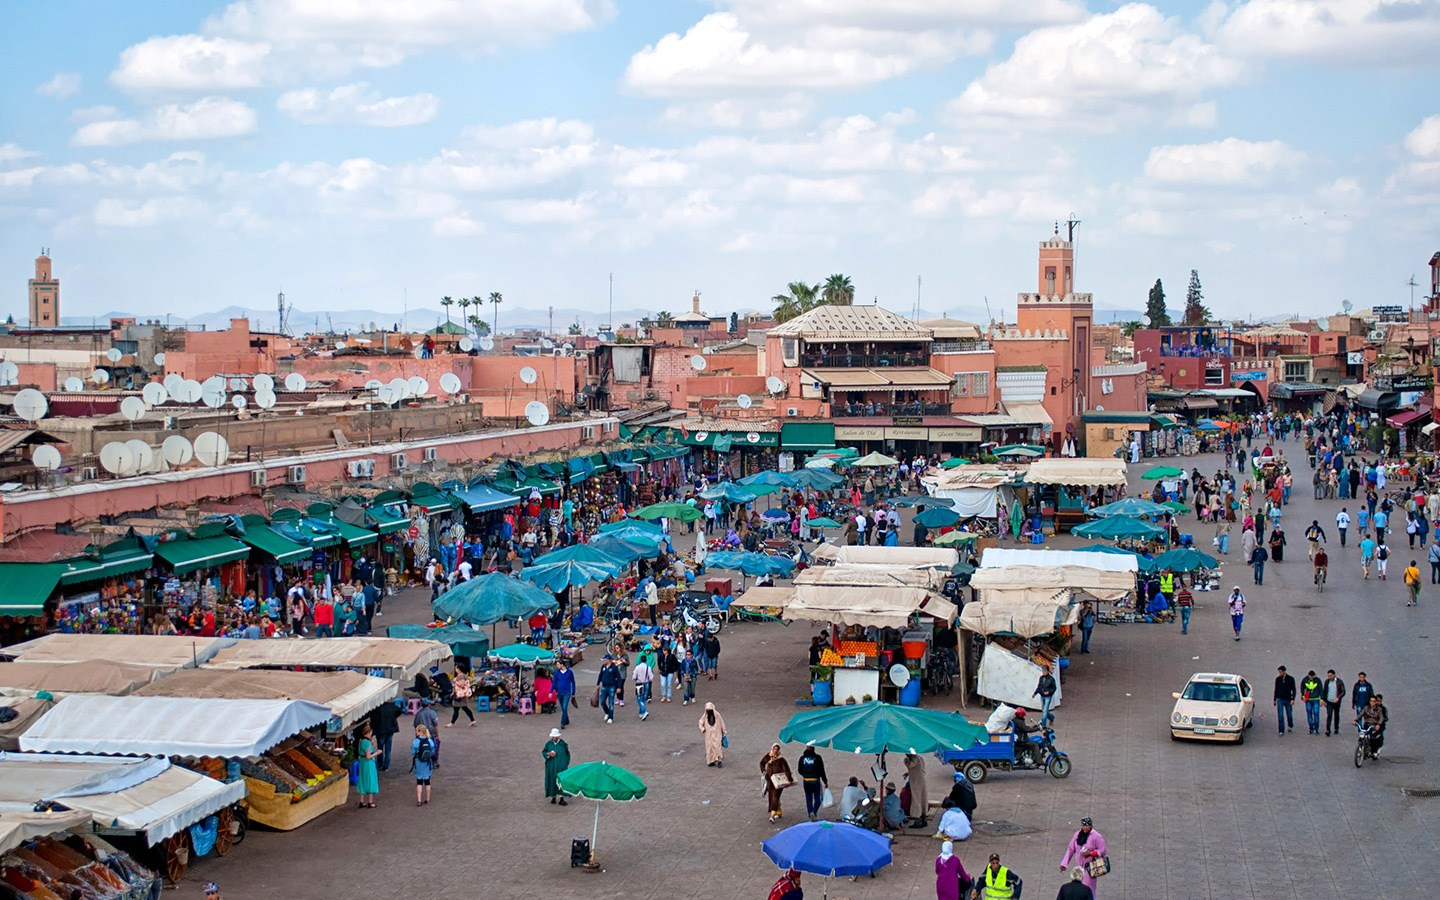 The Djemma el-Fna, Marrakech's main square